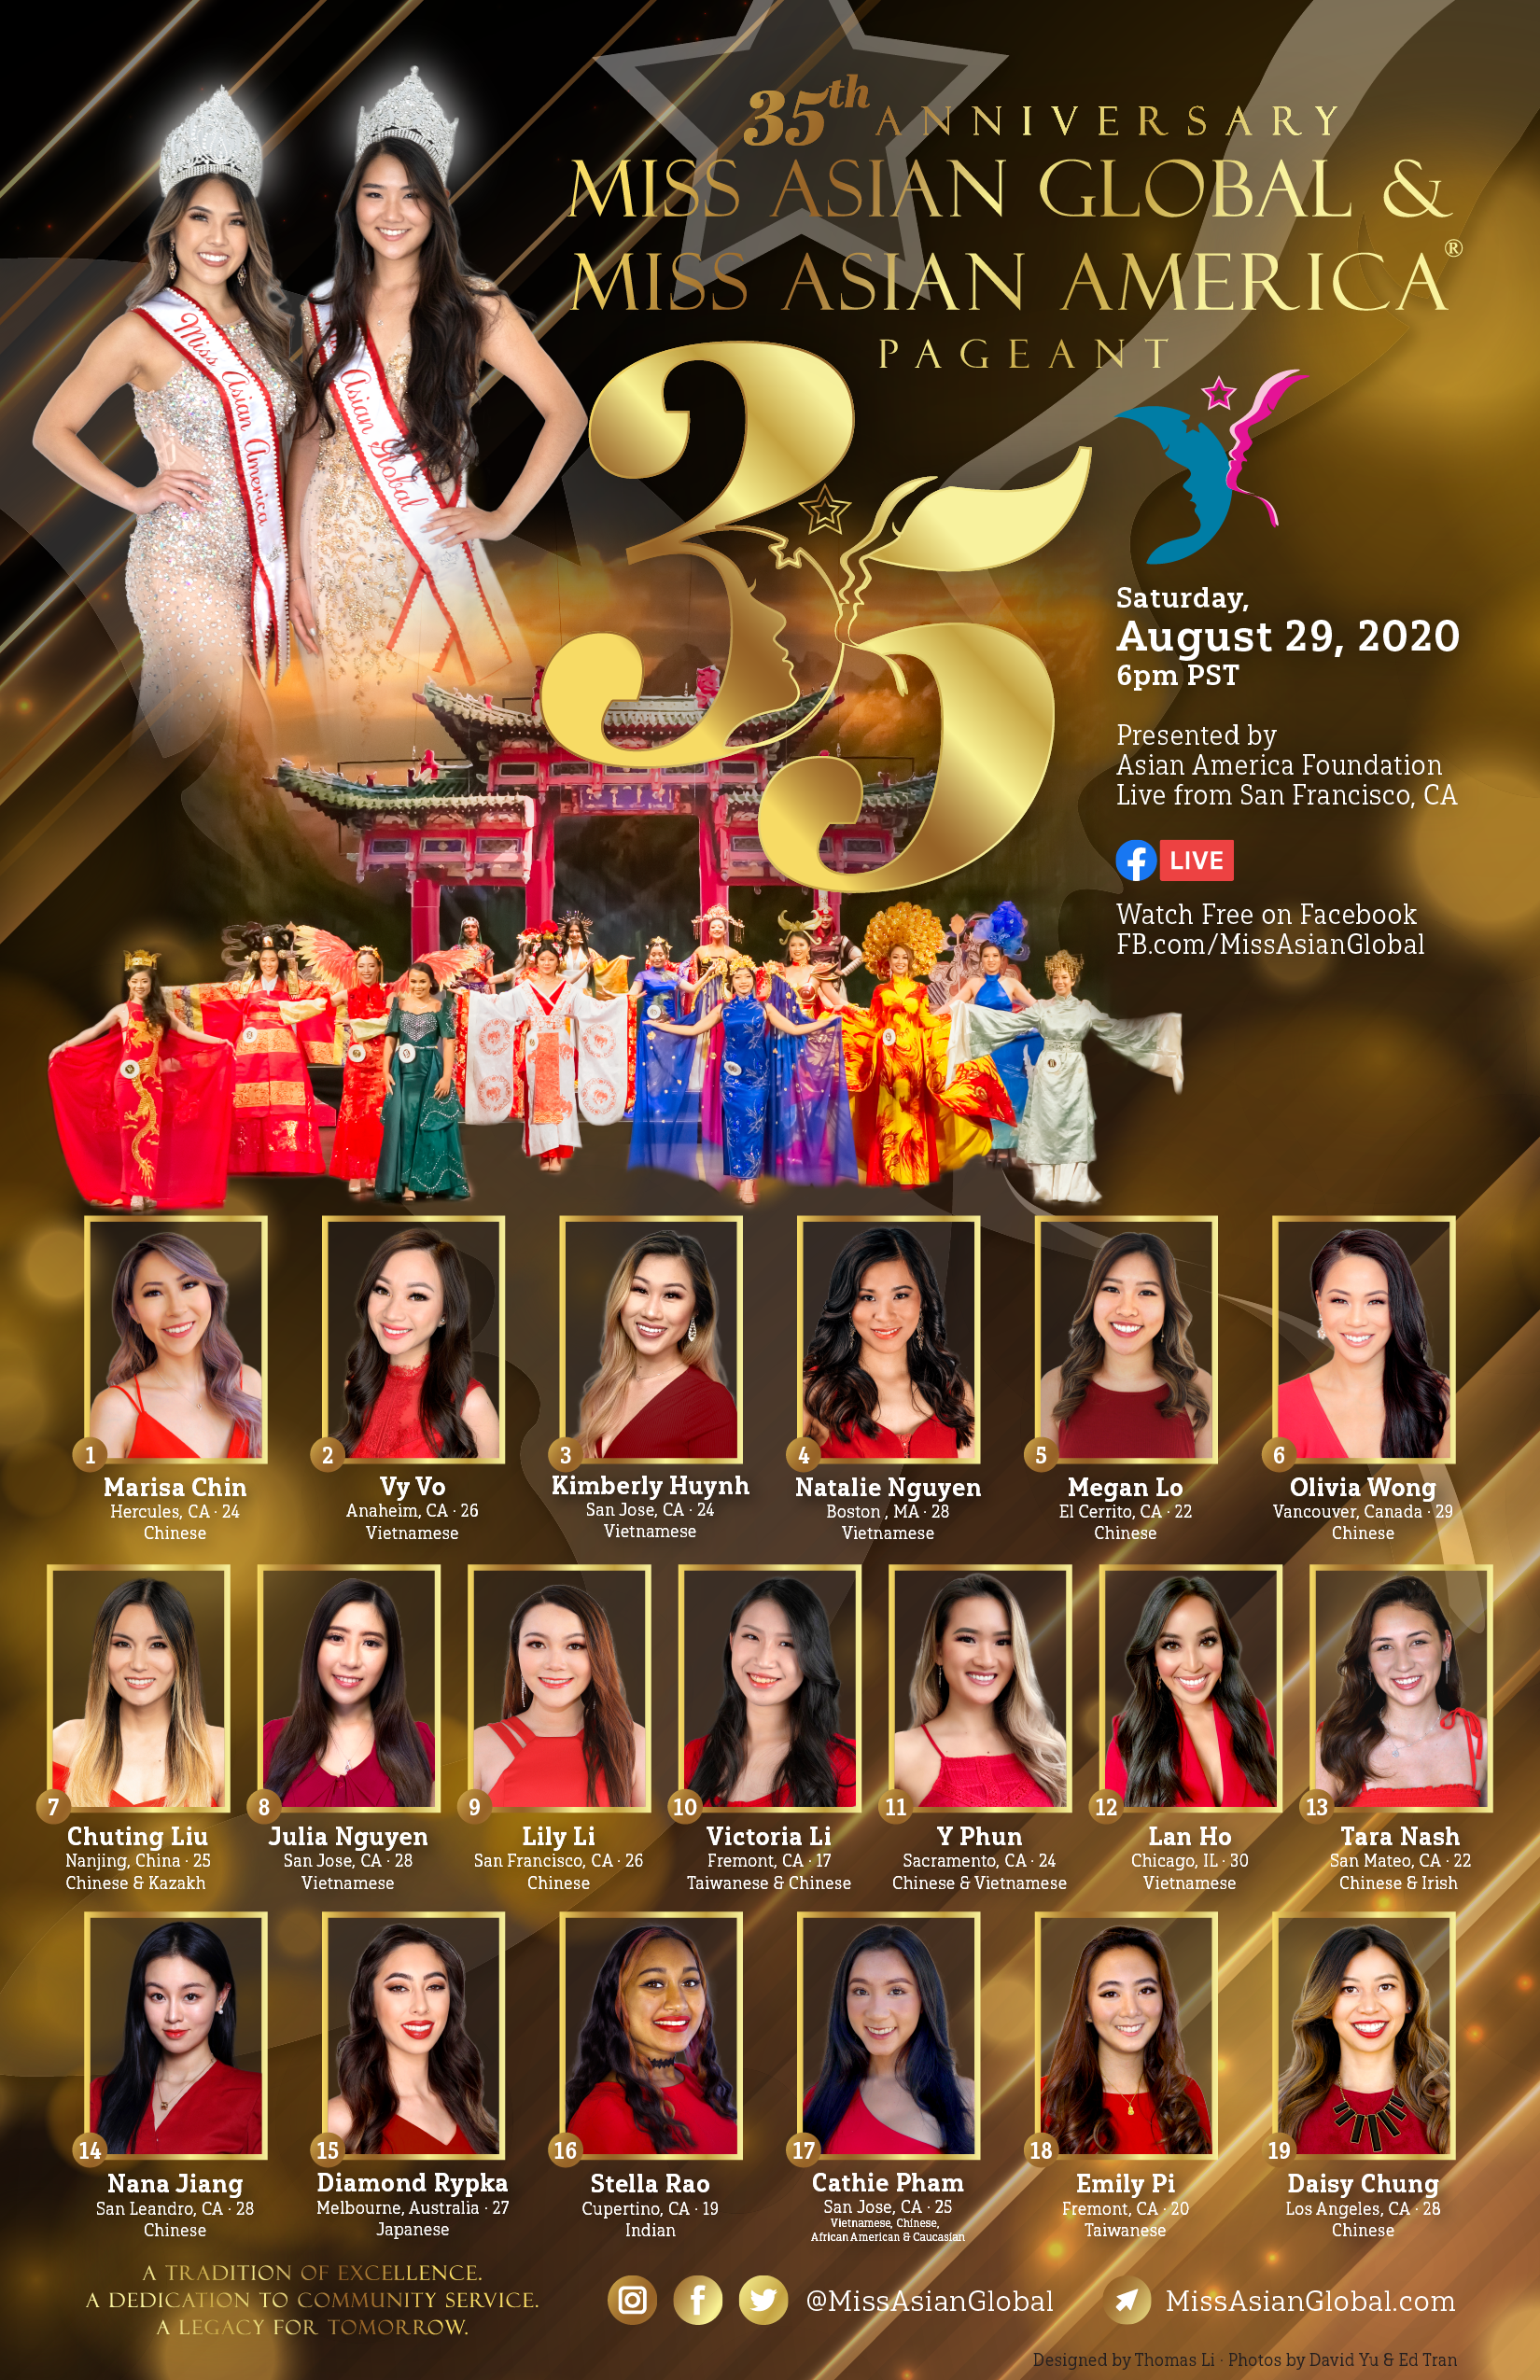 2020 Miss Asian Global Pageant - 35th Anniversary Celebration